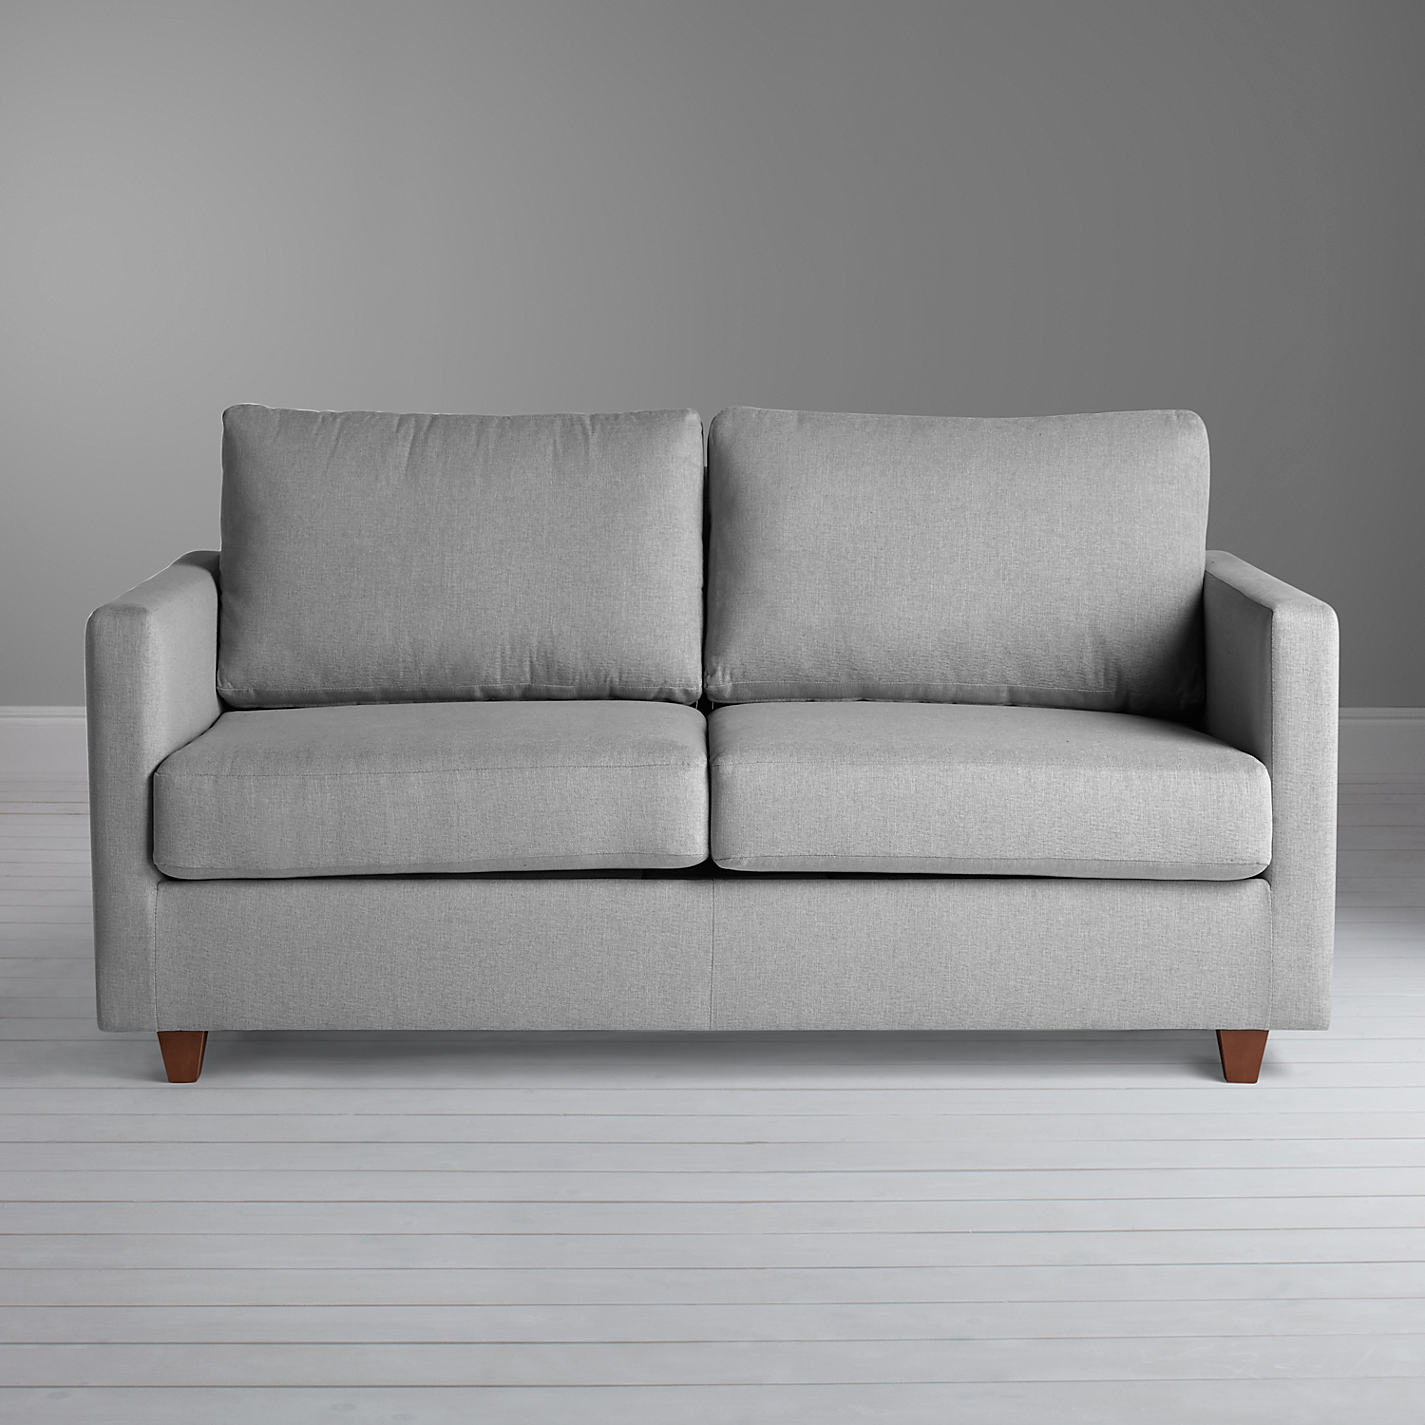 ... buy john lewis barlow 2 seater small sofa bed with pocket sprung YJHUPAU